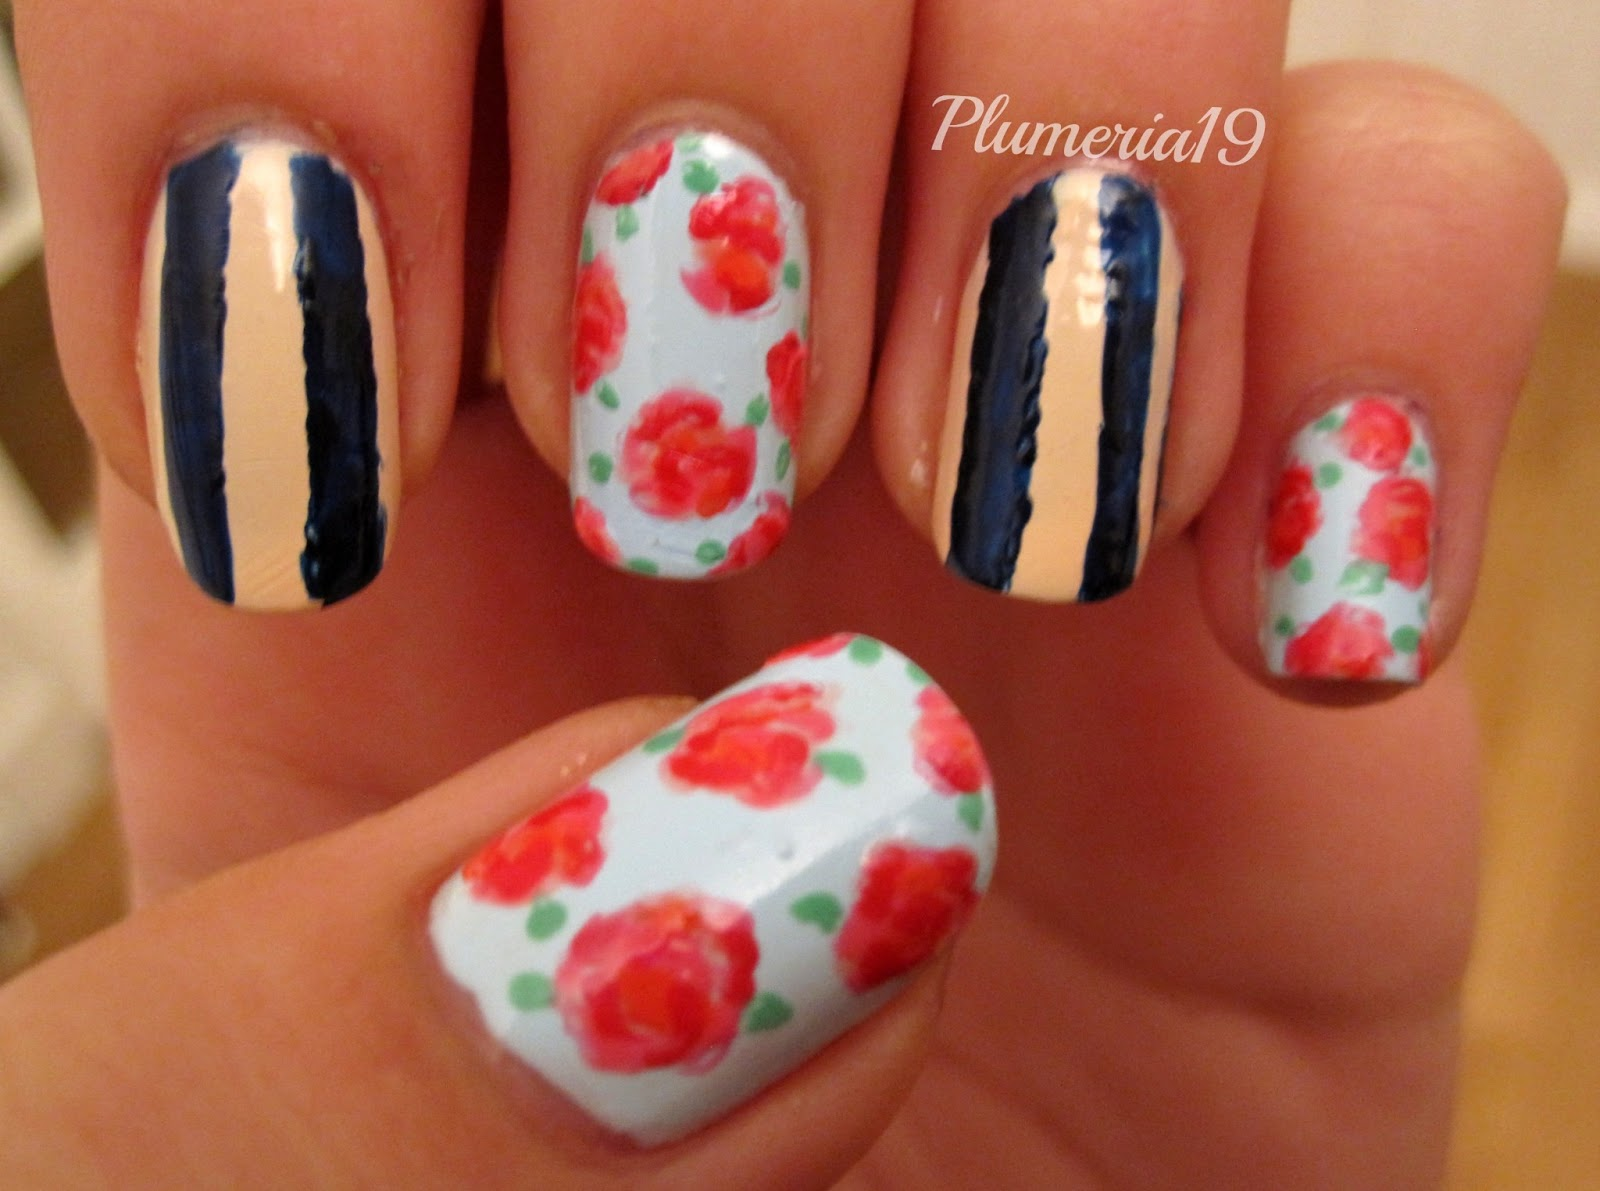 PlumeriaPainted: Love-ly Nail Art Challenge - Roses